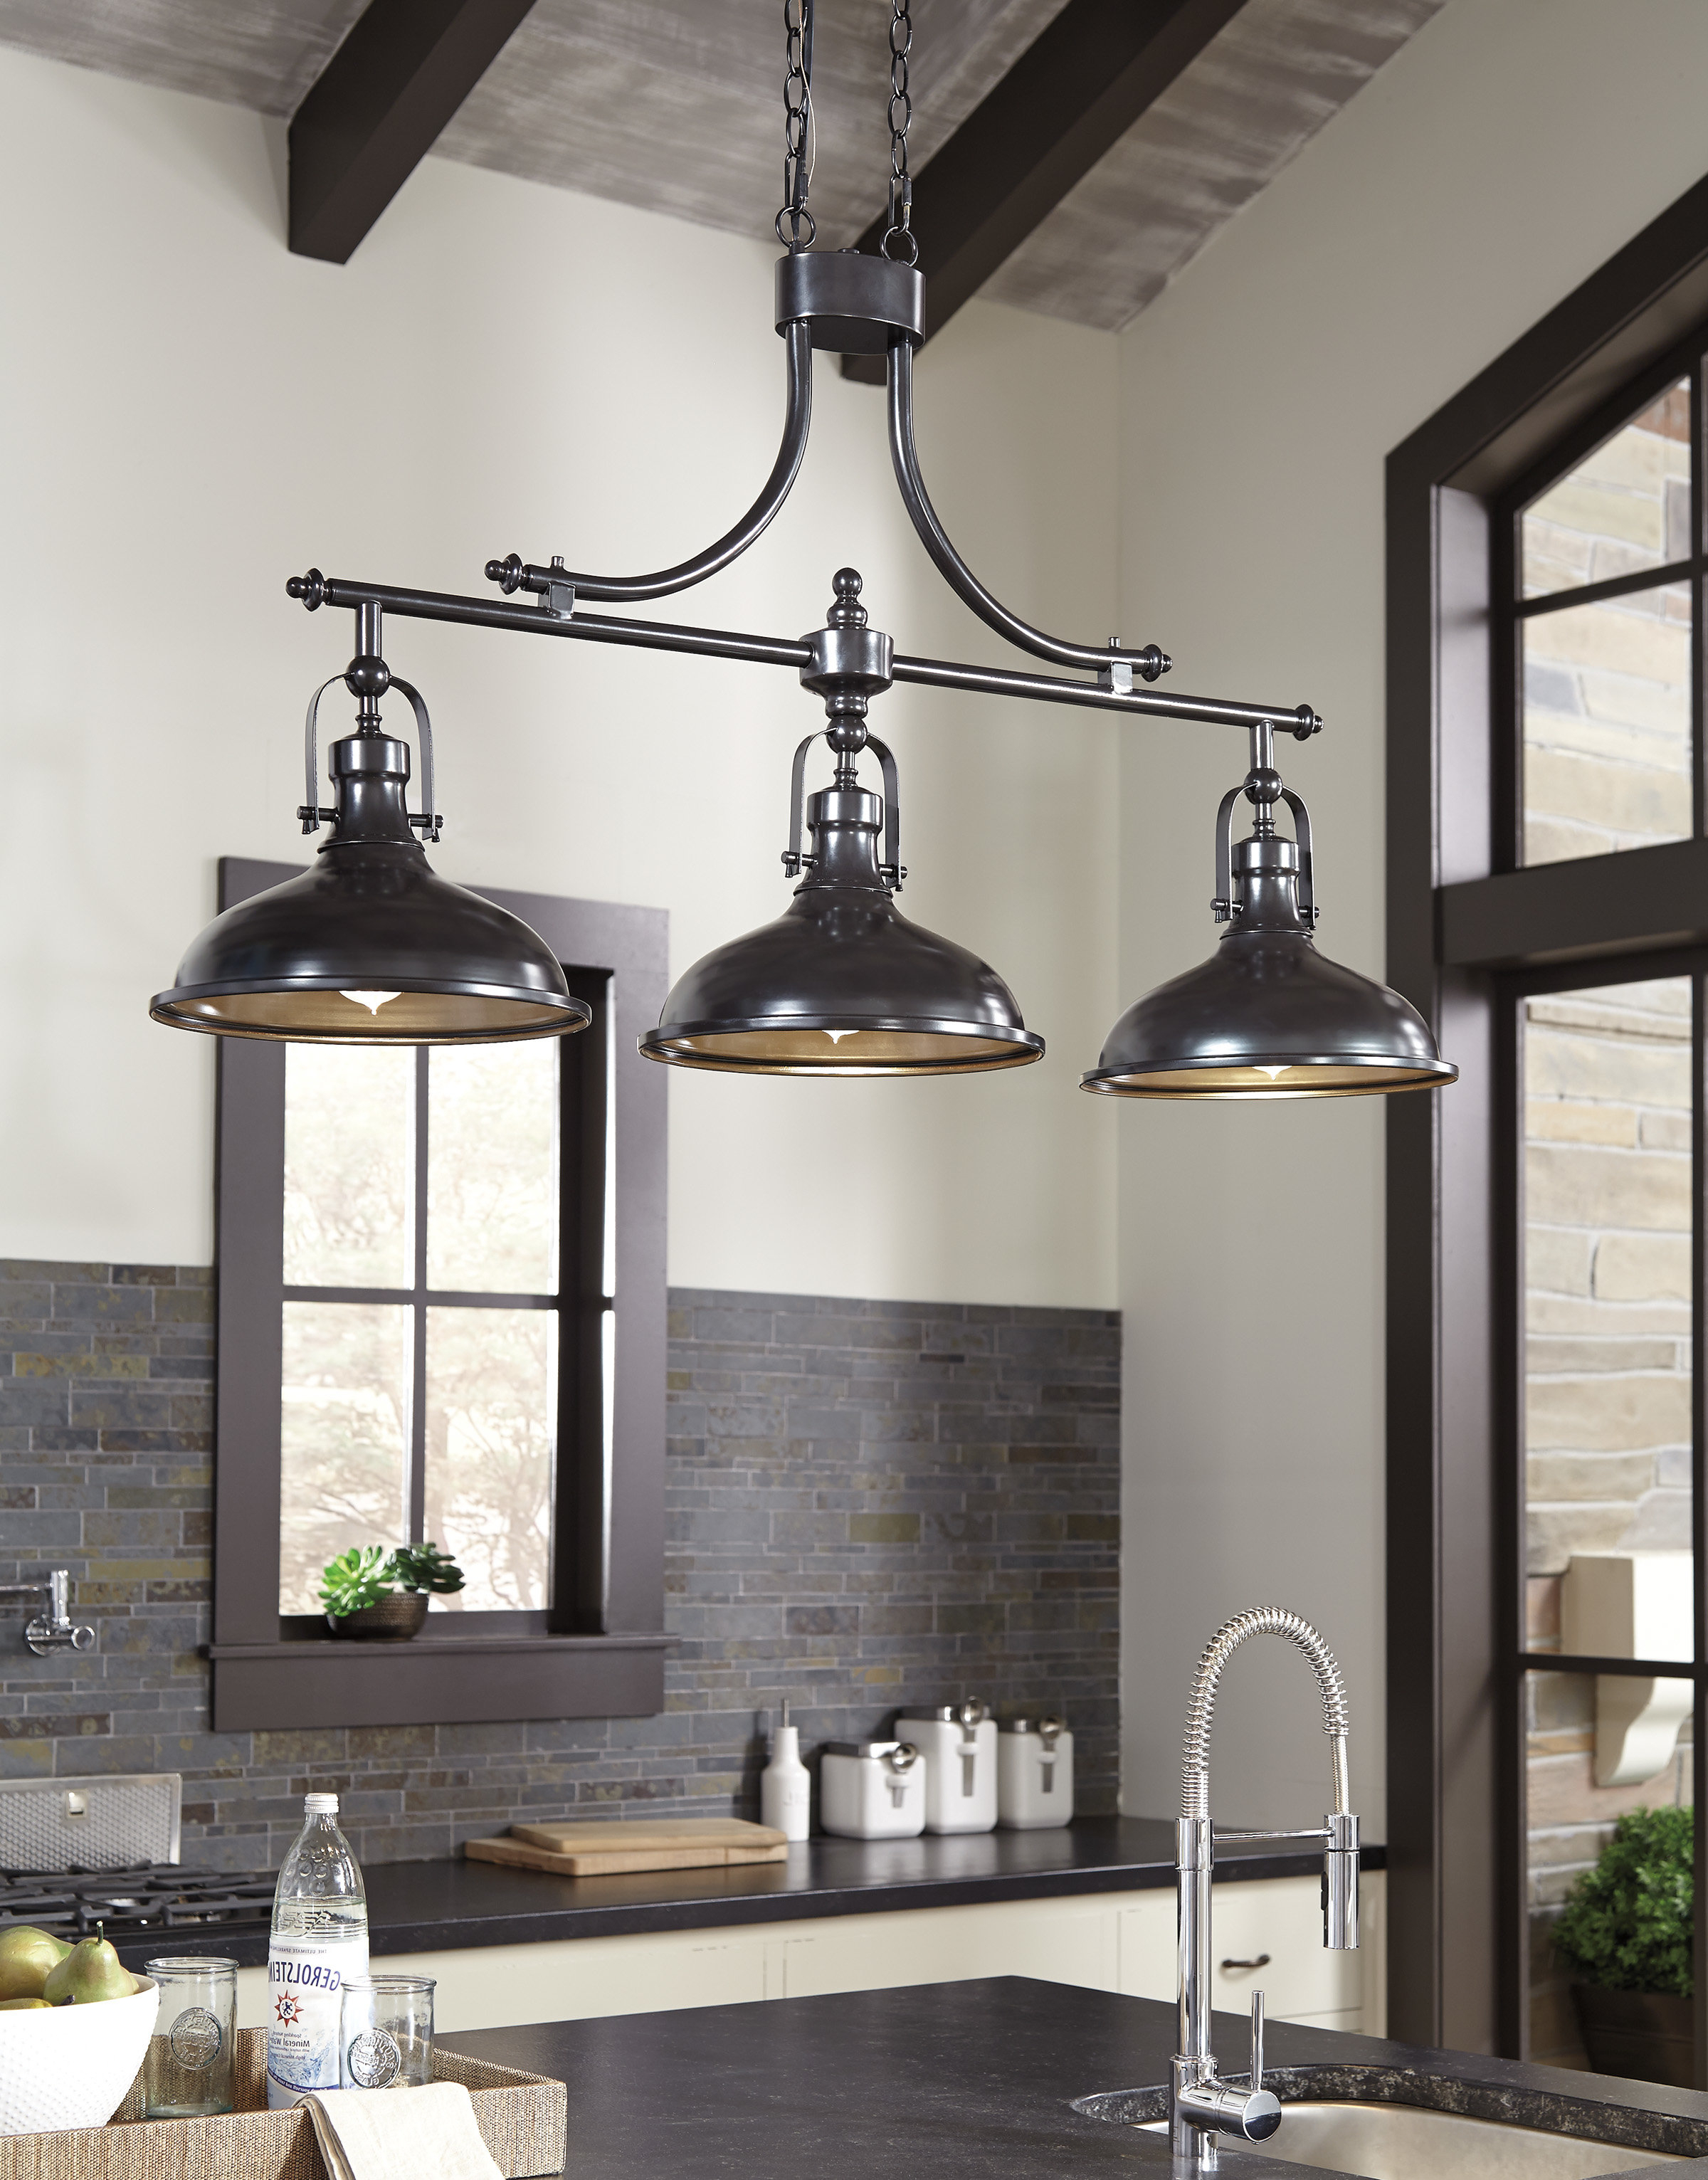 Martinique 3 Light Kitchen Island Dome Pendant Within Widely Used Fredela 3 Light Kitchen Island Pendants (View 3 of 25)